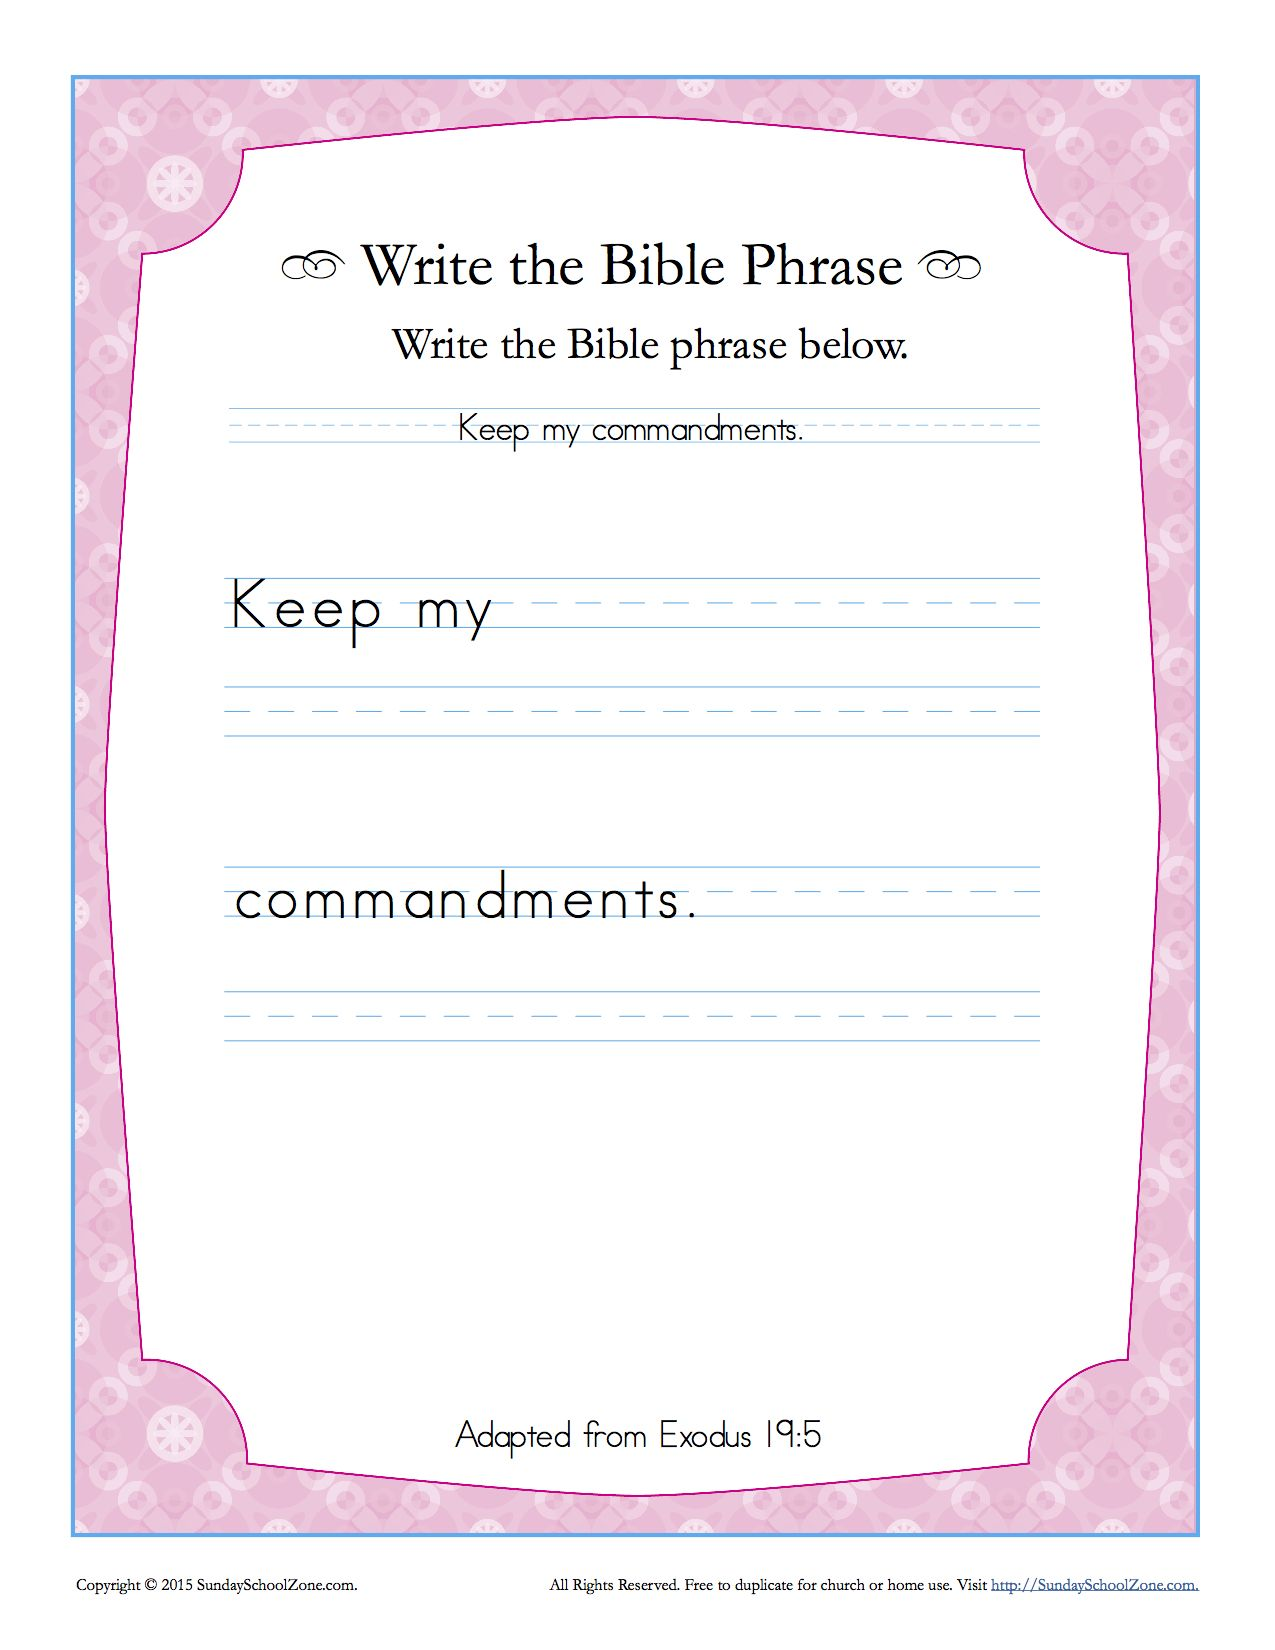 Exodus 19 5 Write The Bible Phrase Worksheet